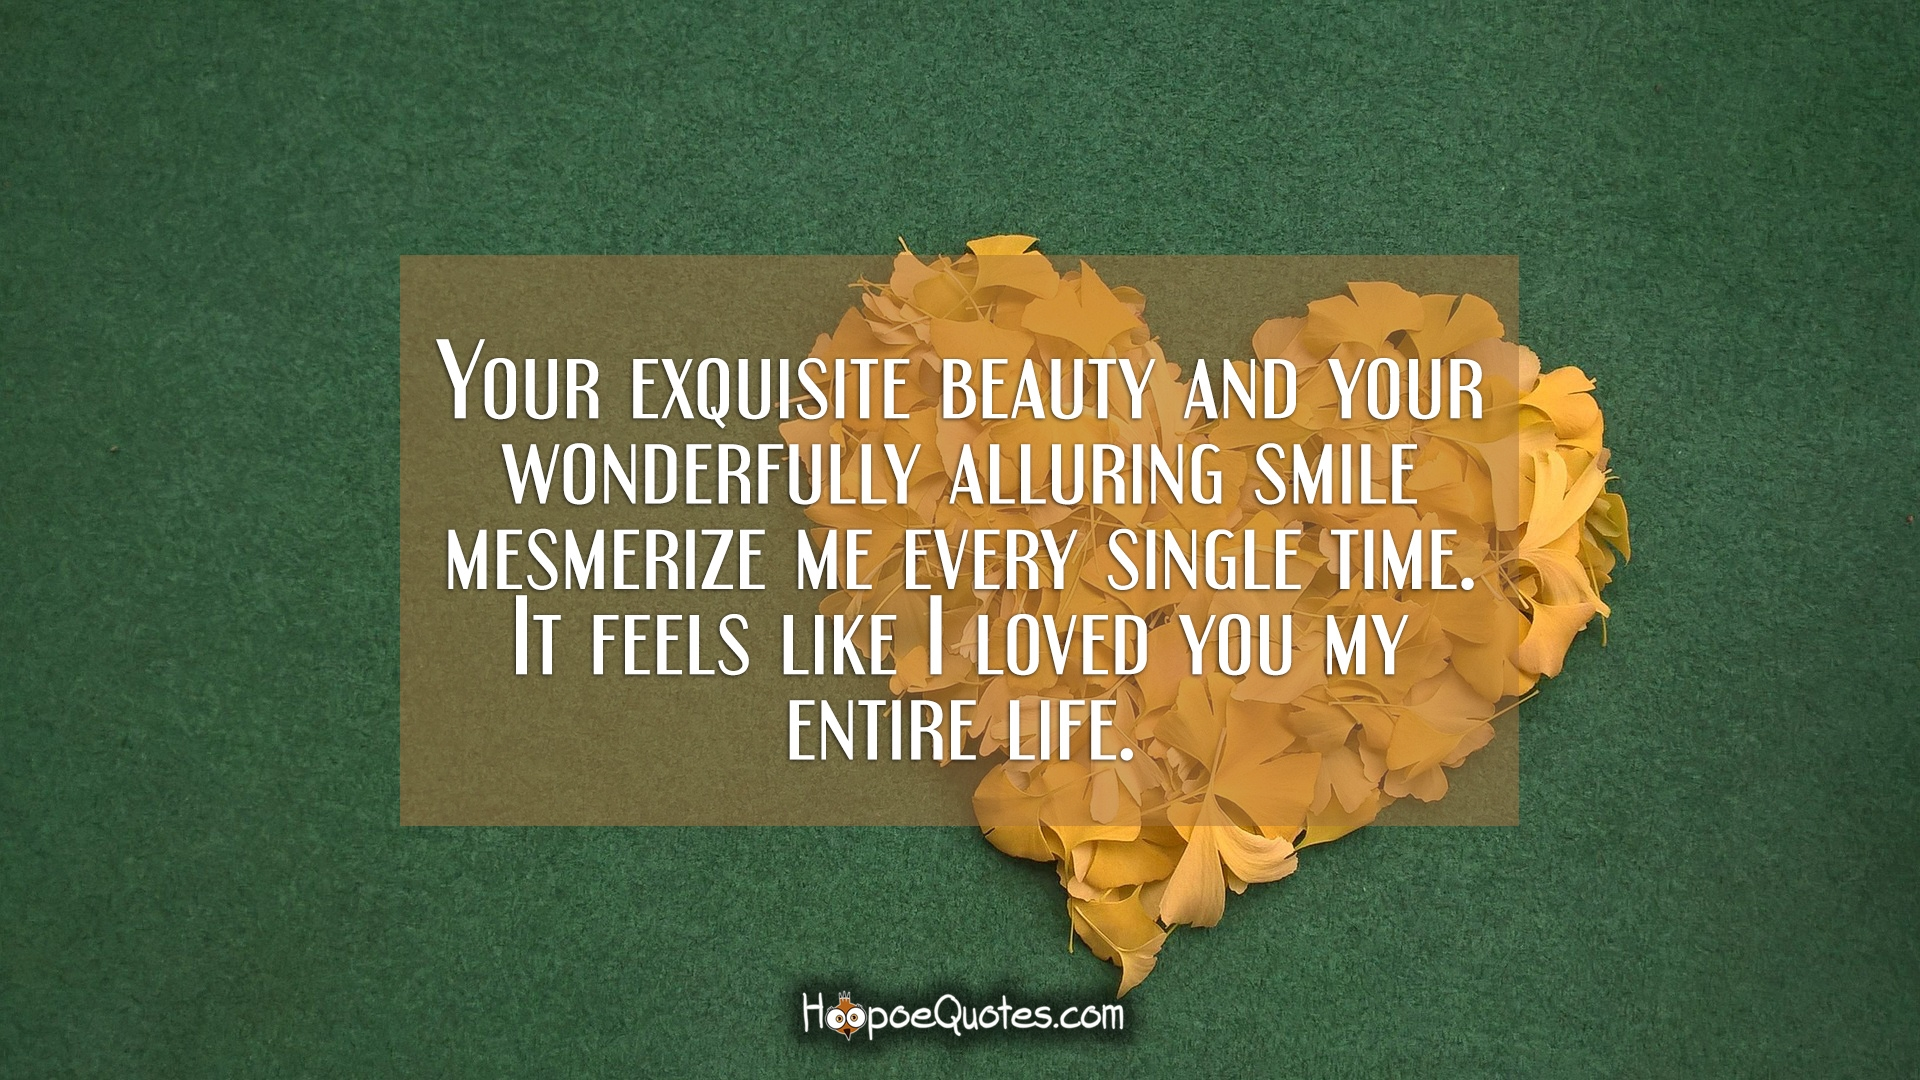 Your Exquisite Beauty And Your Wonderfully Alluring Smile Mesmerize